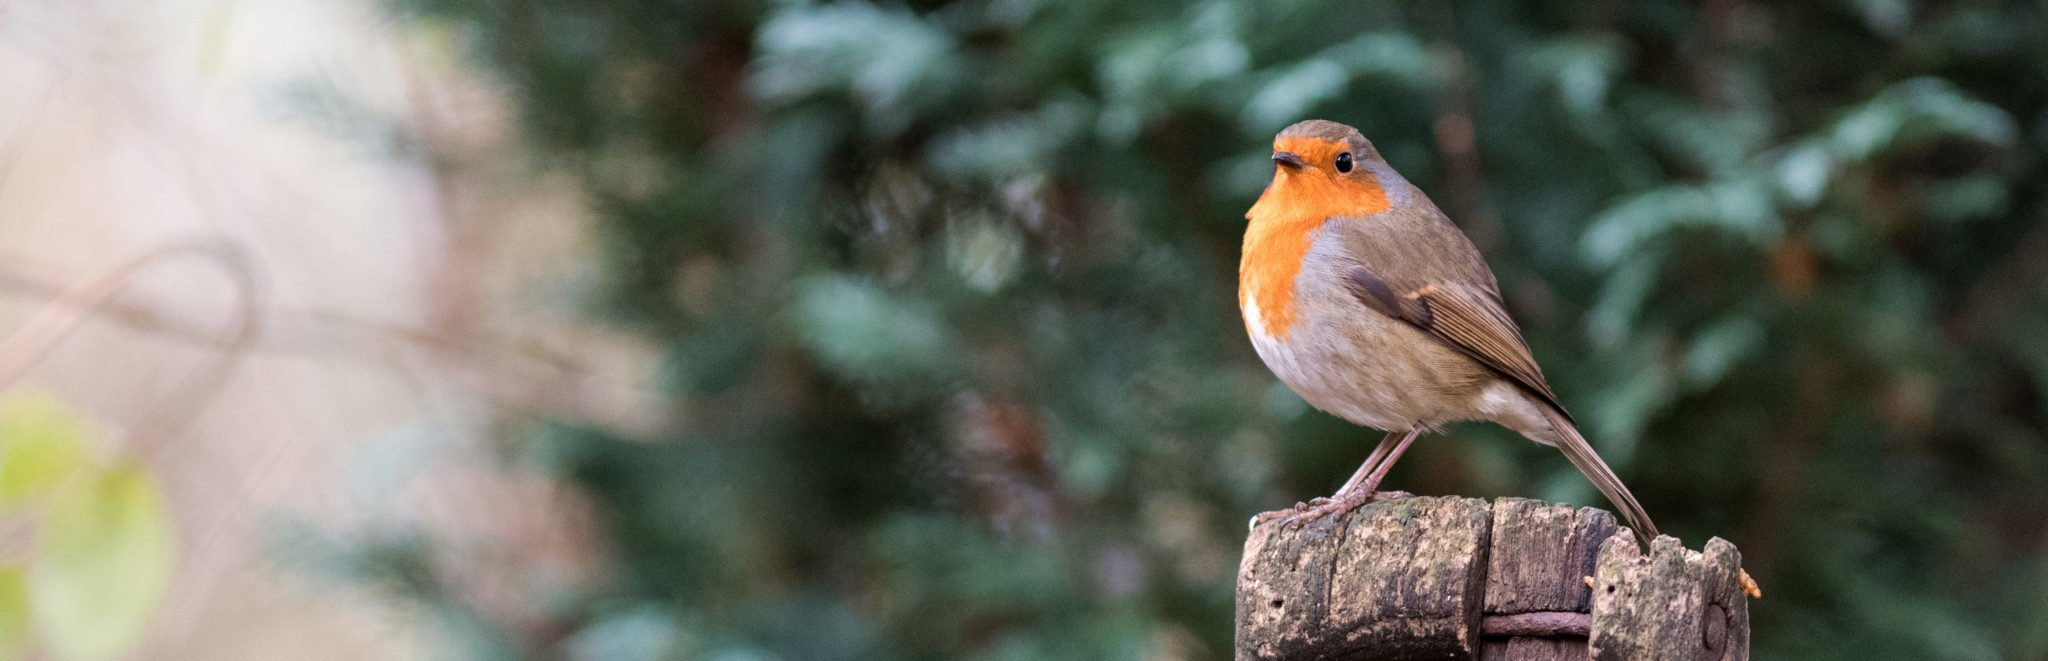 A robin sitting on a spade handle